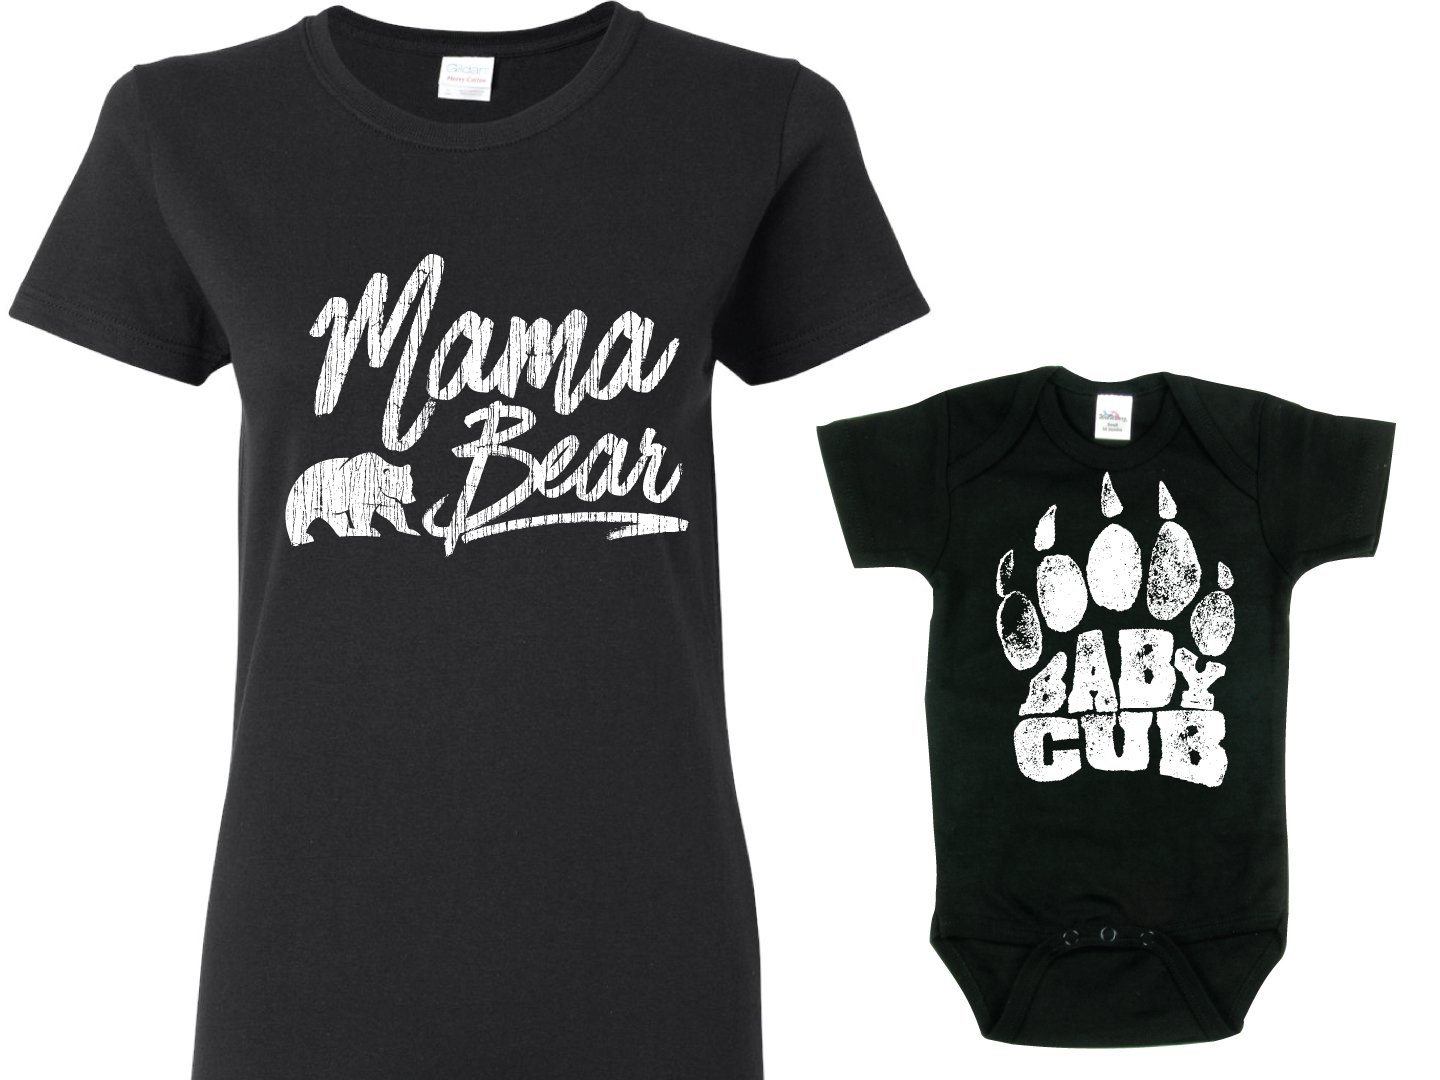 Baby Cub Matching Shirts for Mom and Son, Black Womans Lg Shirt & Black 6-12m